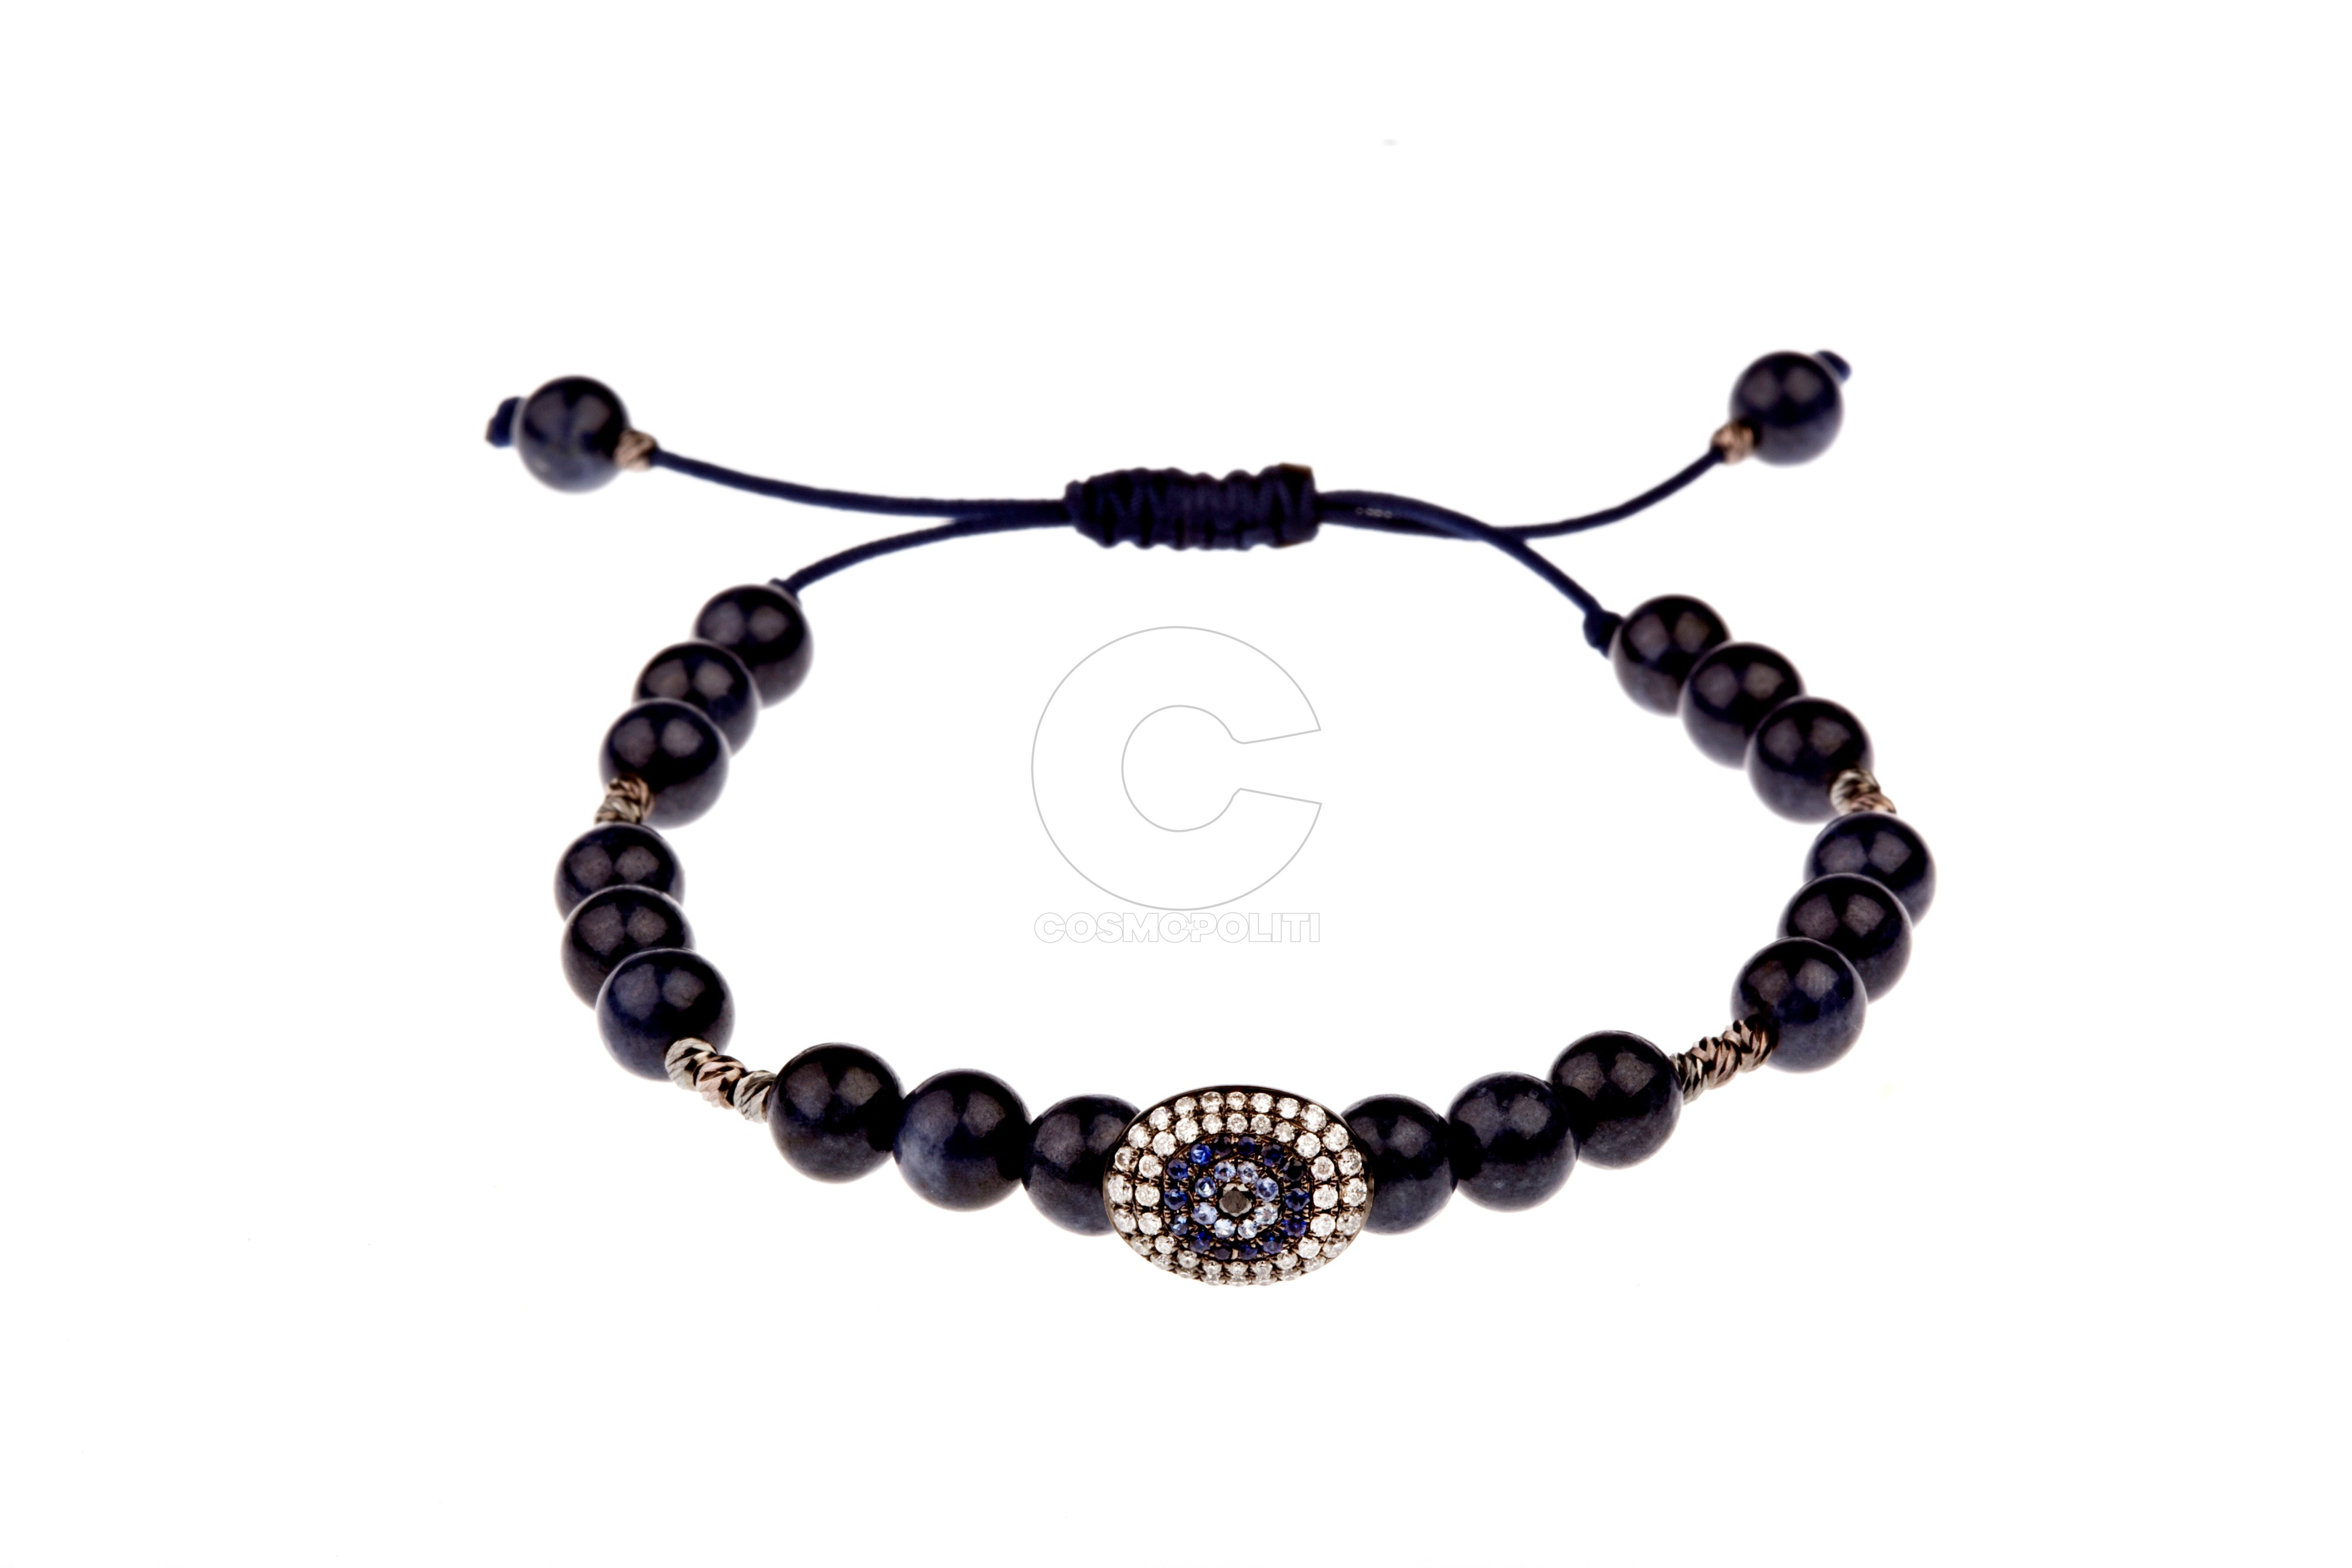 Olympus Collection Bracelet, Demeter Style in 18k gold with white and black diamonds, blue sapphires, navy blue cord, blue sapphire beads and gold diamond cut